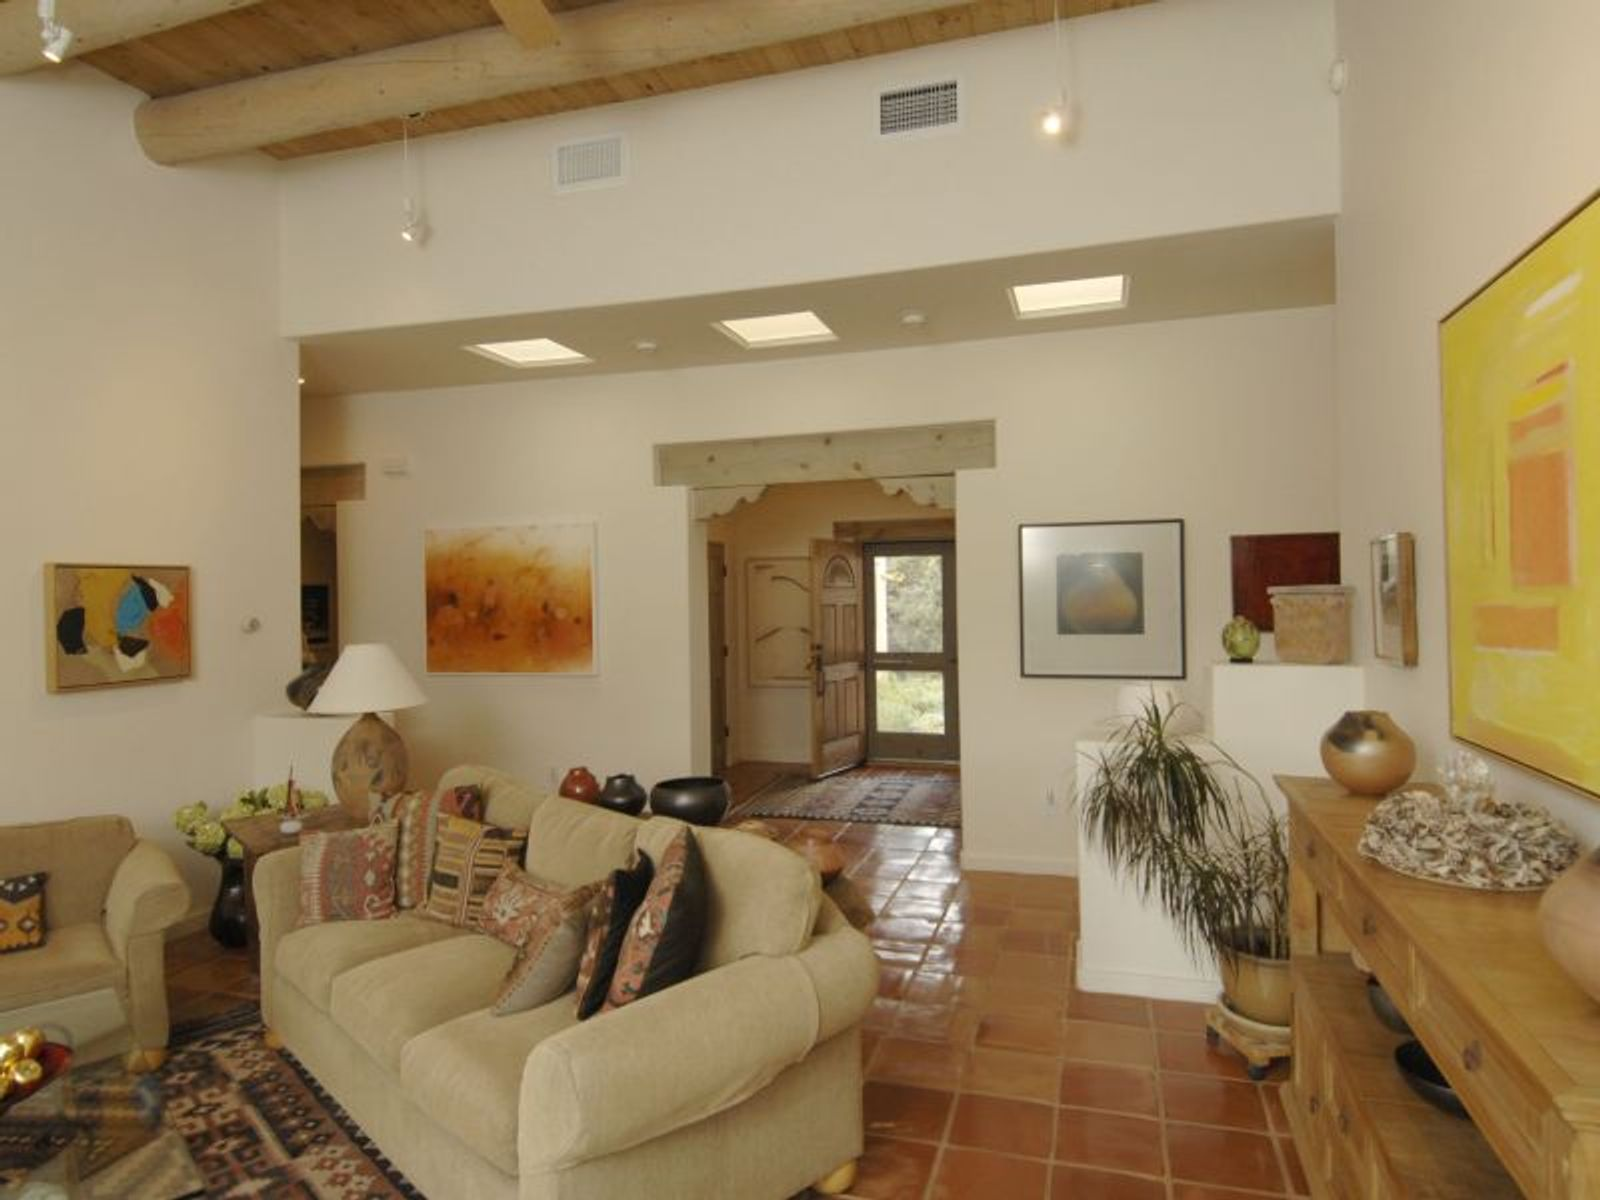 901 Allahna Way, Santa Fe NM Single Family Home - Santa Fe Real Estate